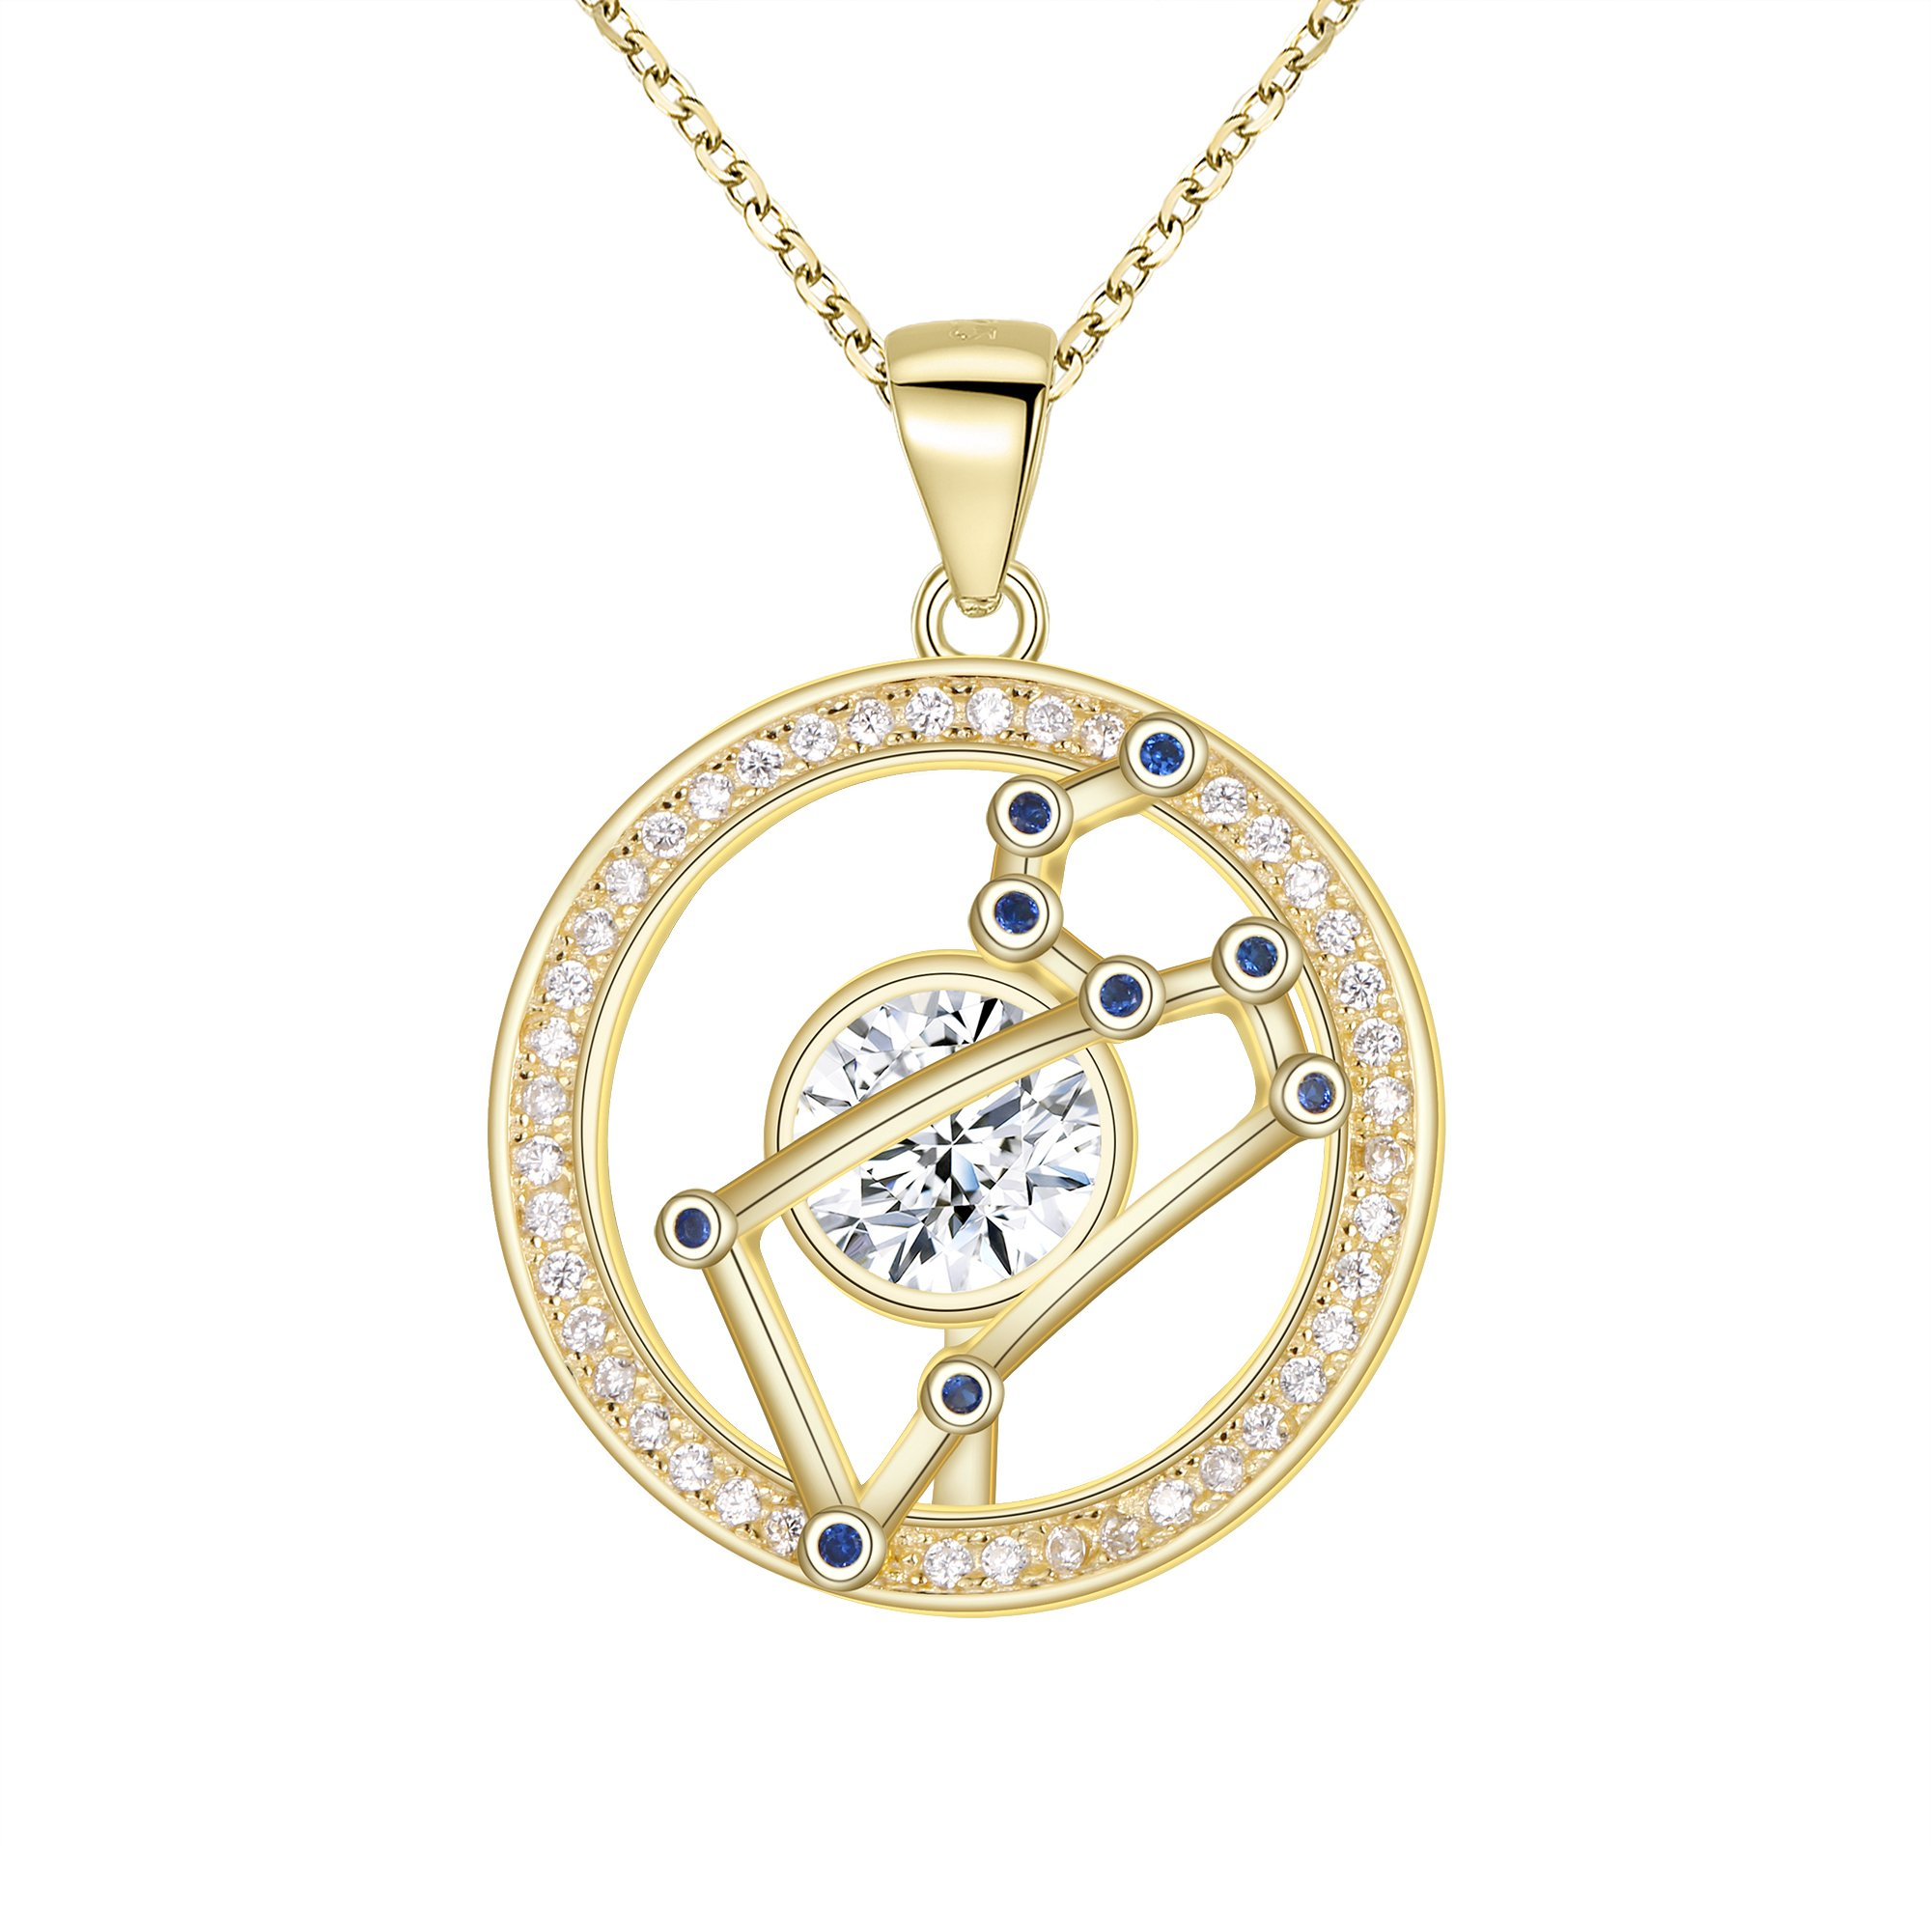 FANZE Leo-925 sterling silver Horoscope Zodiac 12 Constellation CZ Pendant Necklace Golden Birthday Gift GoldPlated 18''+ 1.7''